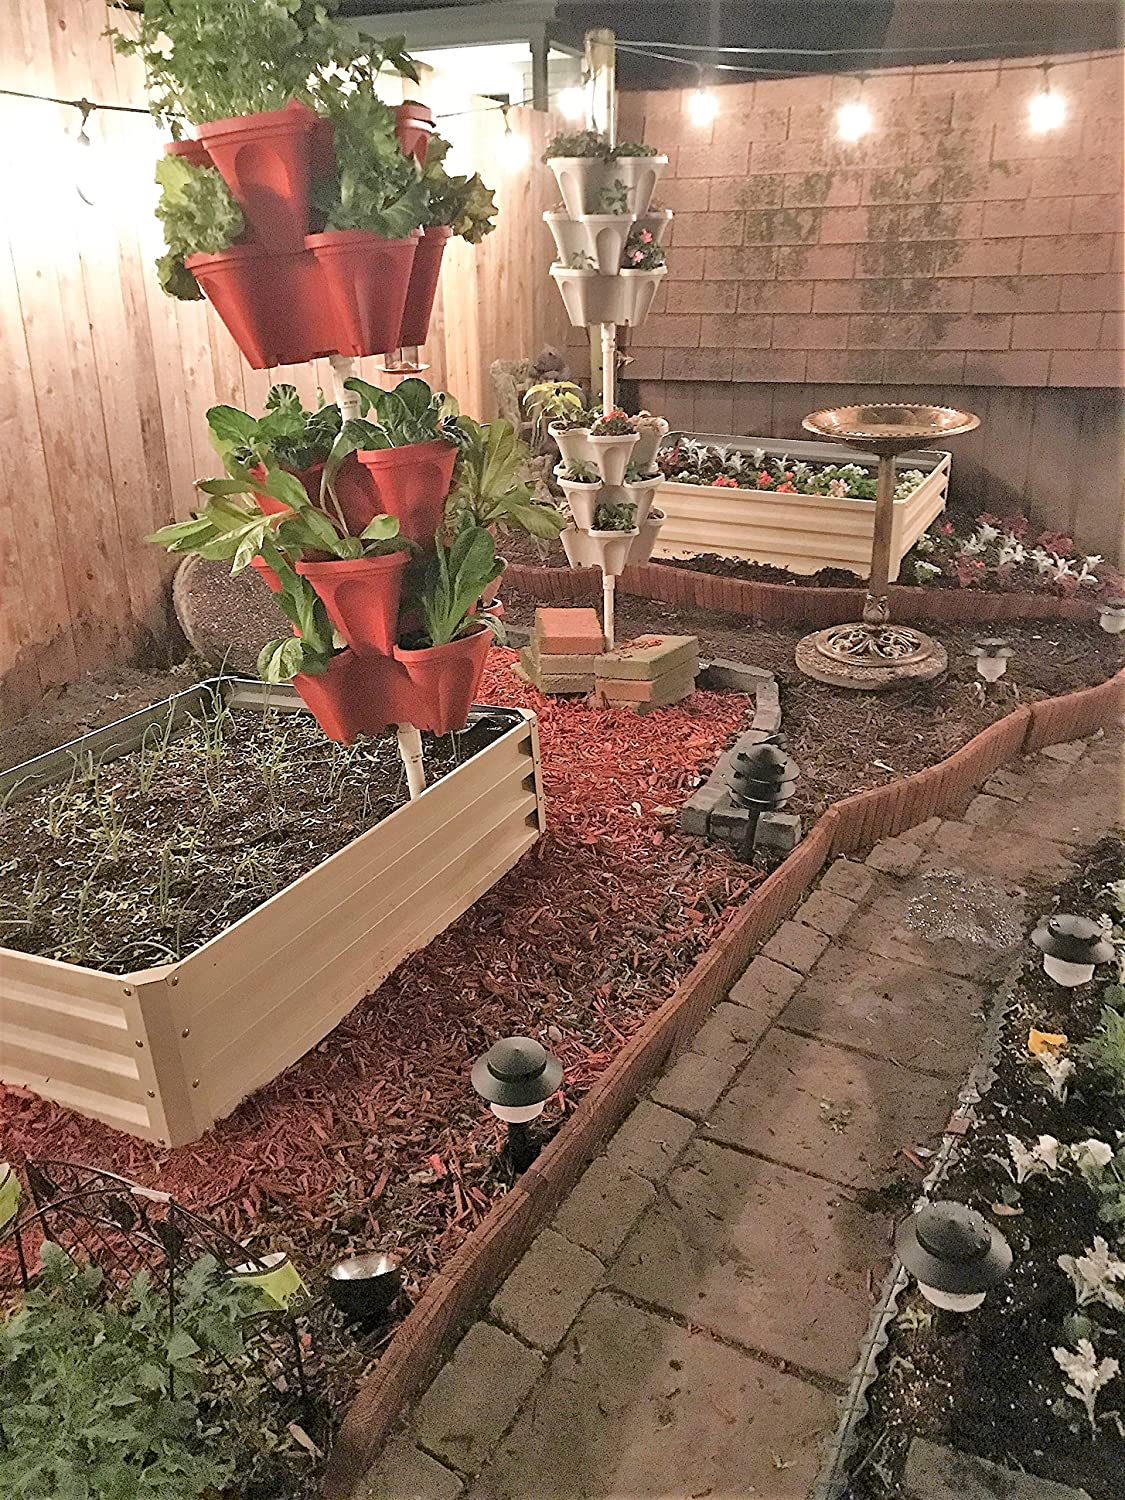 Amazon.com: Metal Raised Garden Bed Kit - Elevated Planter Box For ...